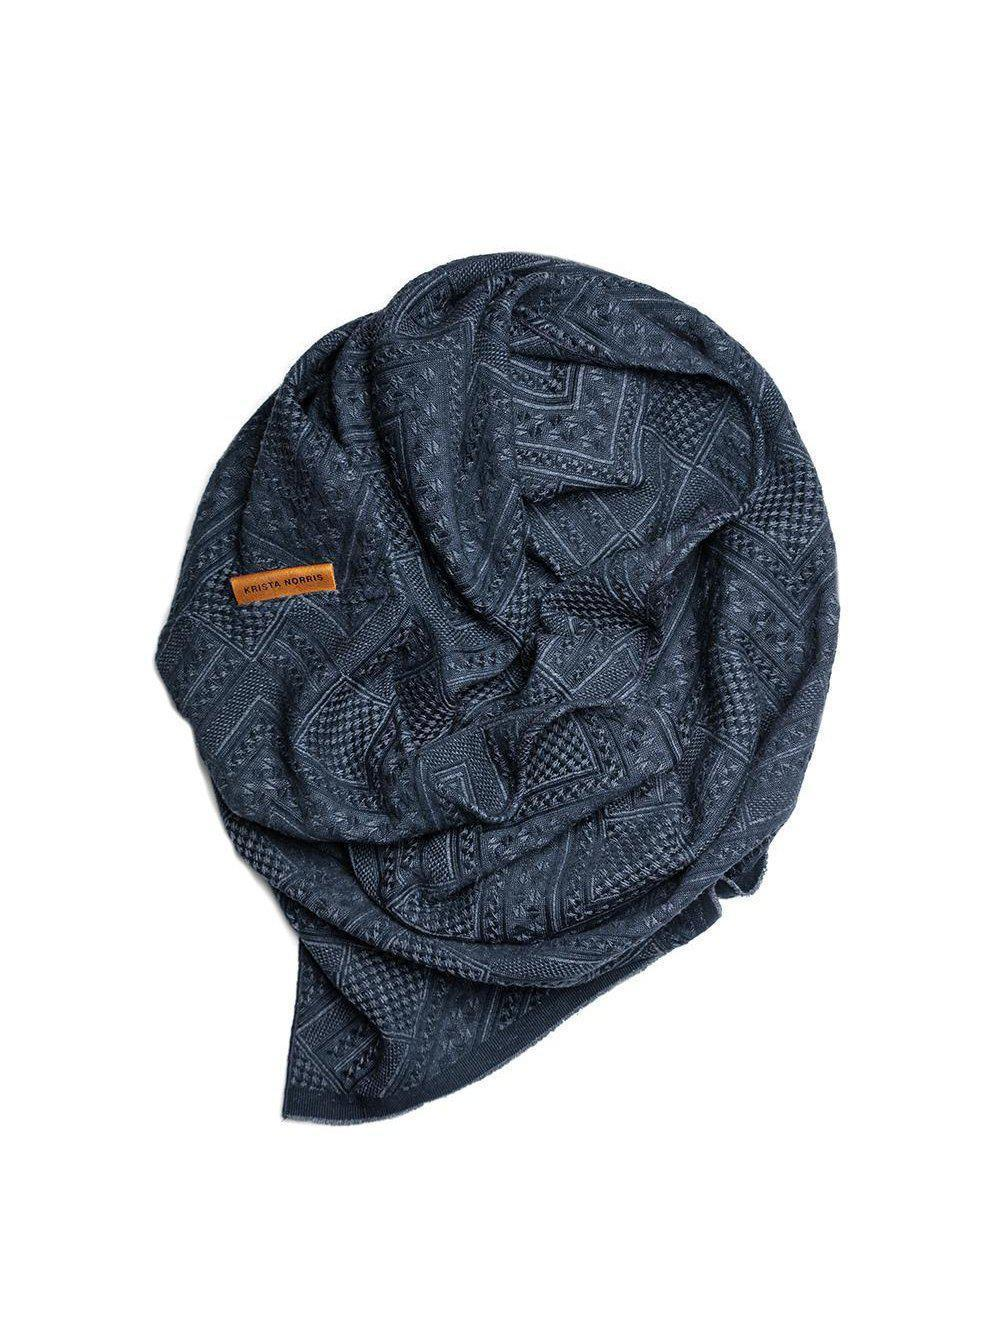 Krista Norris Palmyra Wingtip Infinity Scarf-Accessories - Scarves-Sattva Boutique